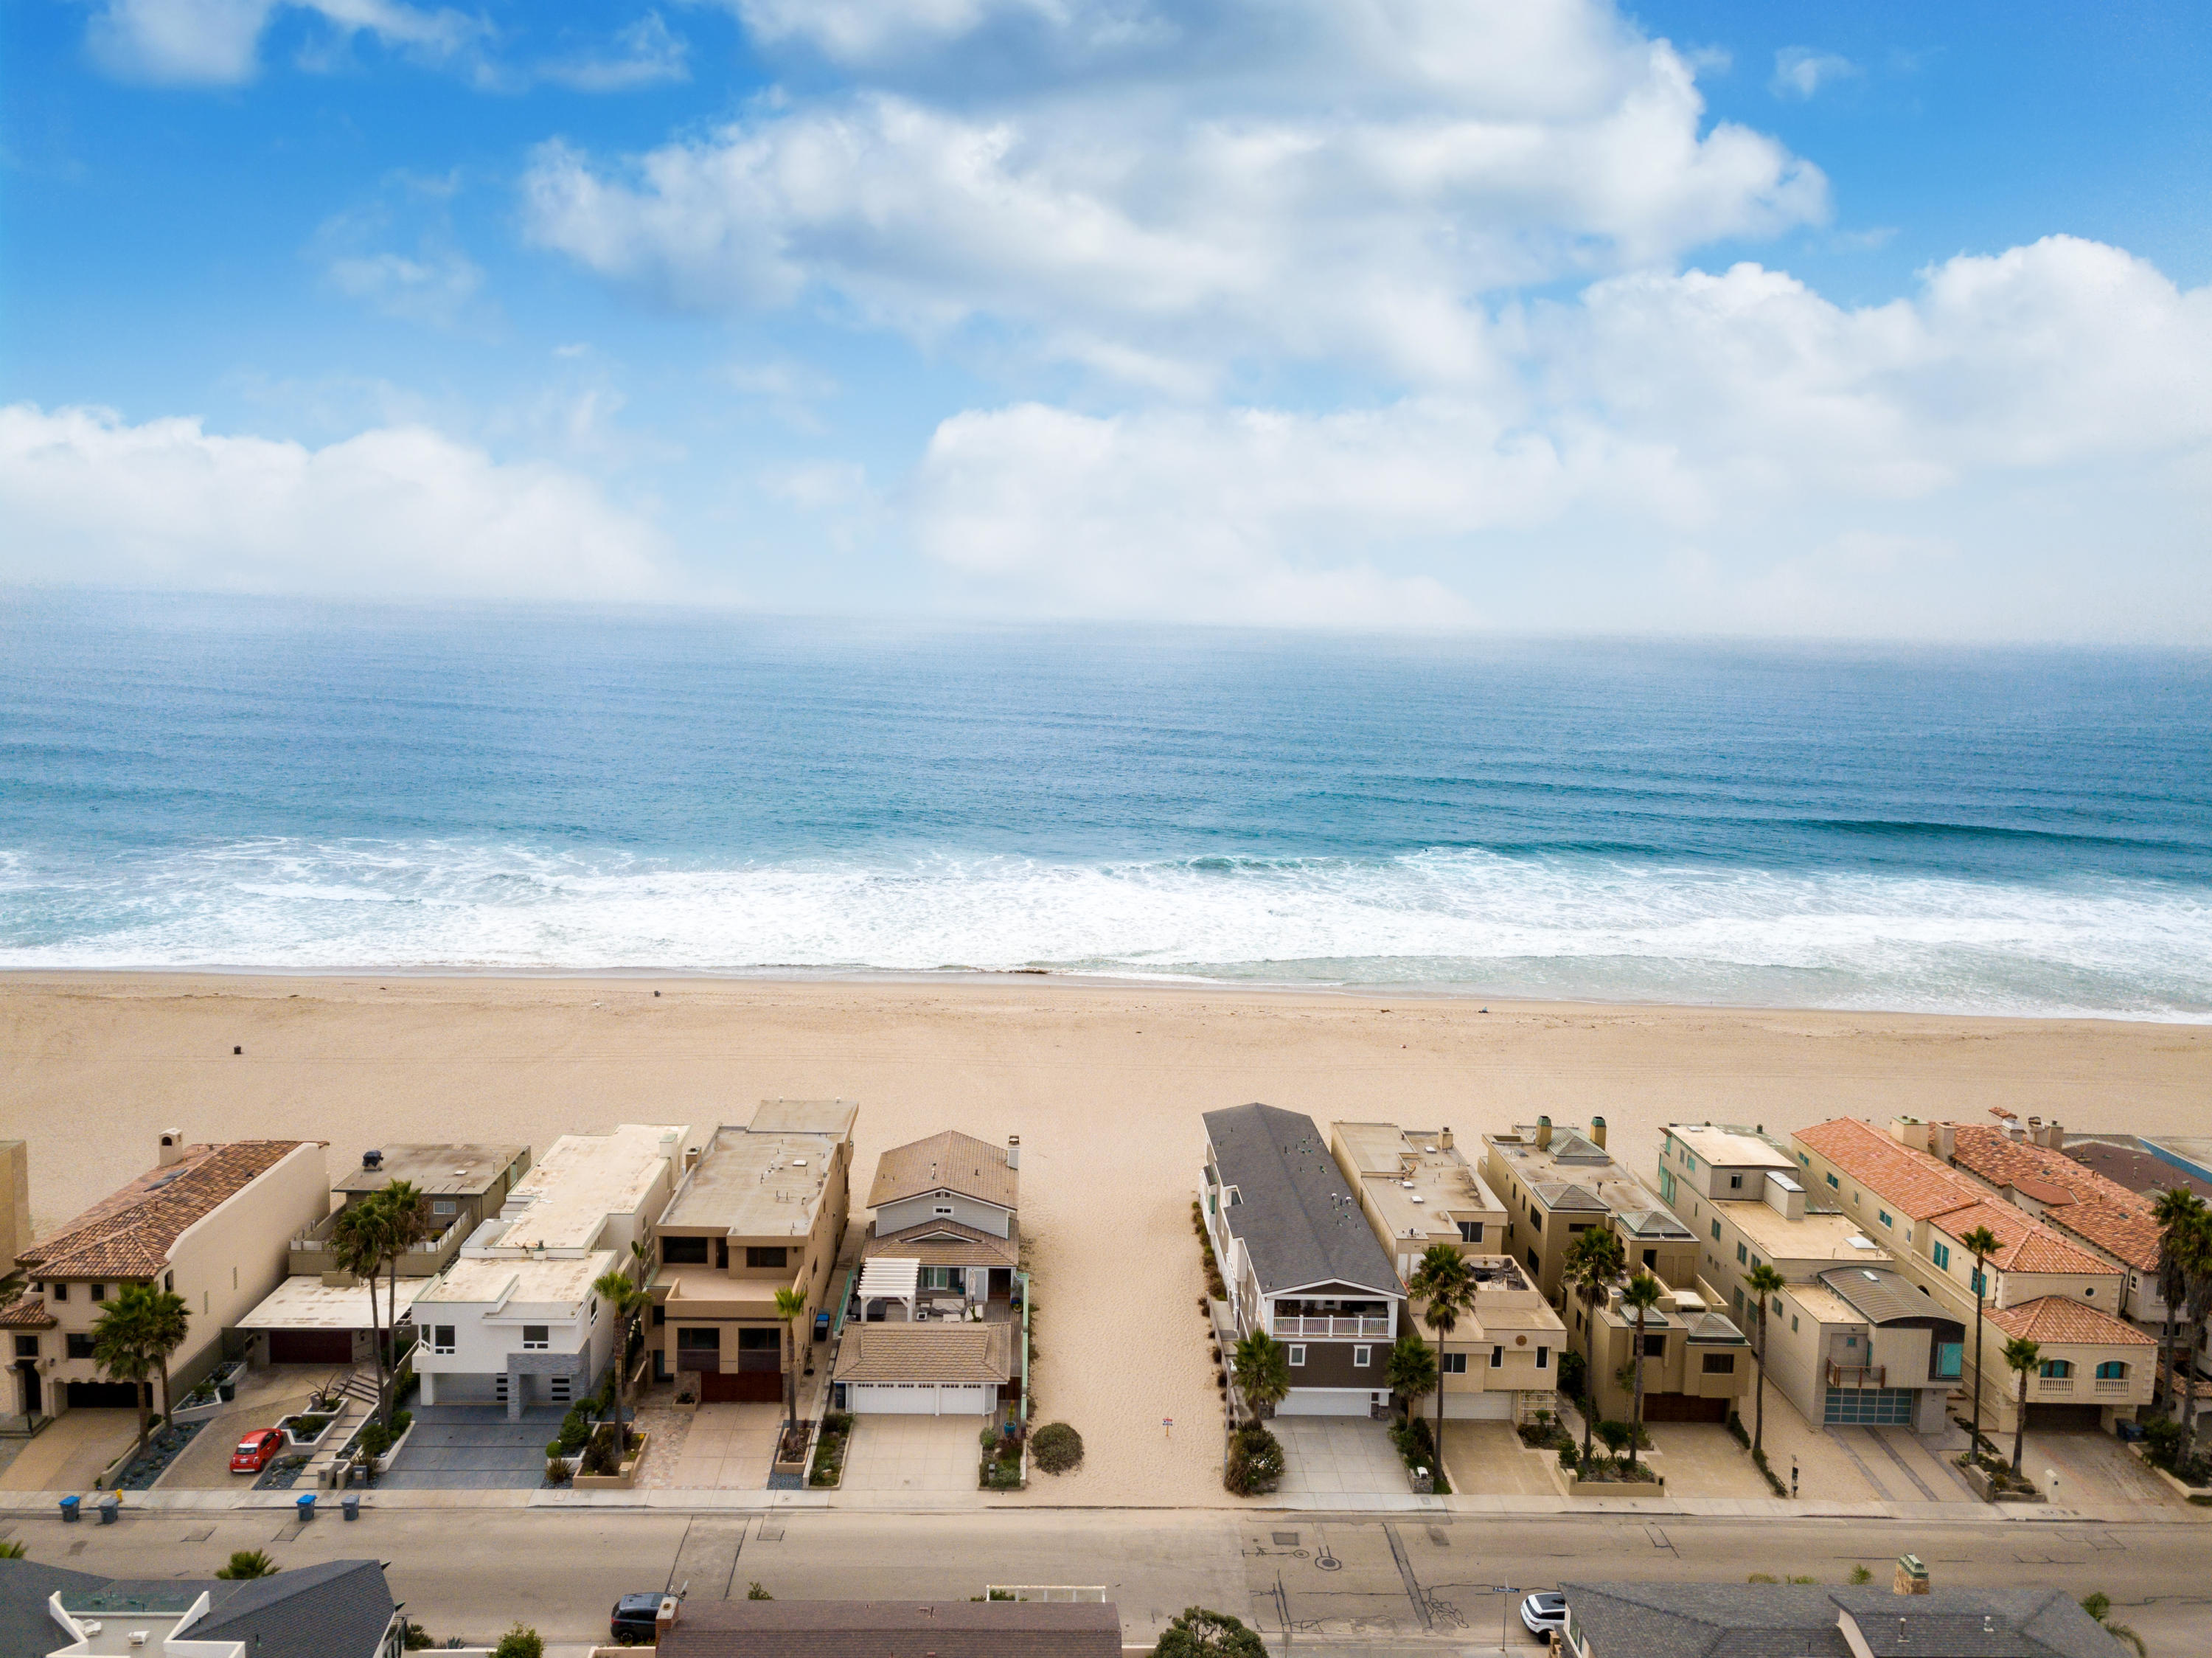 941  Mandalay Beach Rd, Oxnard, California